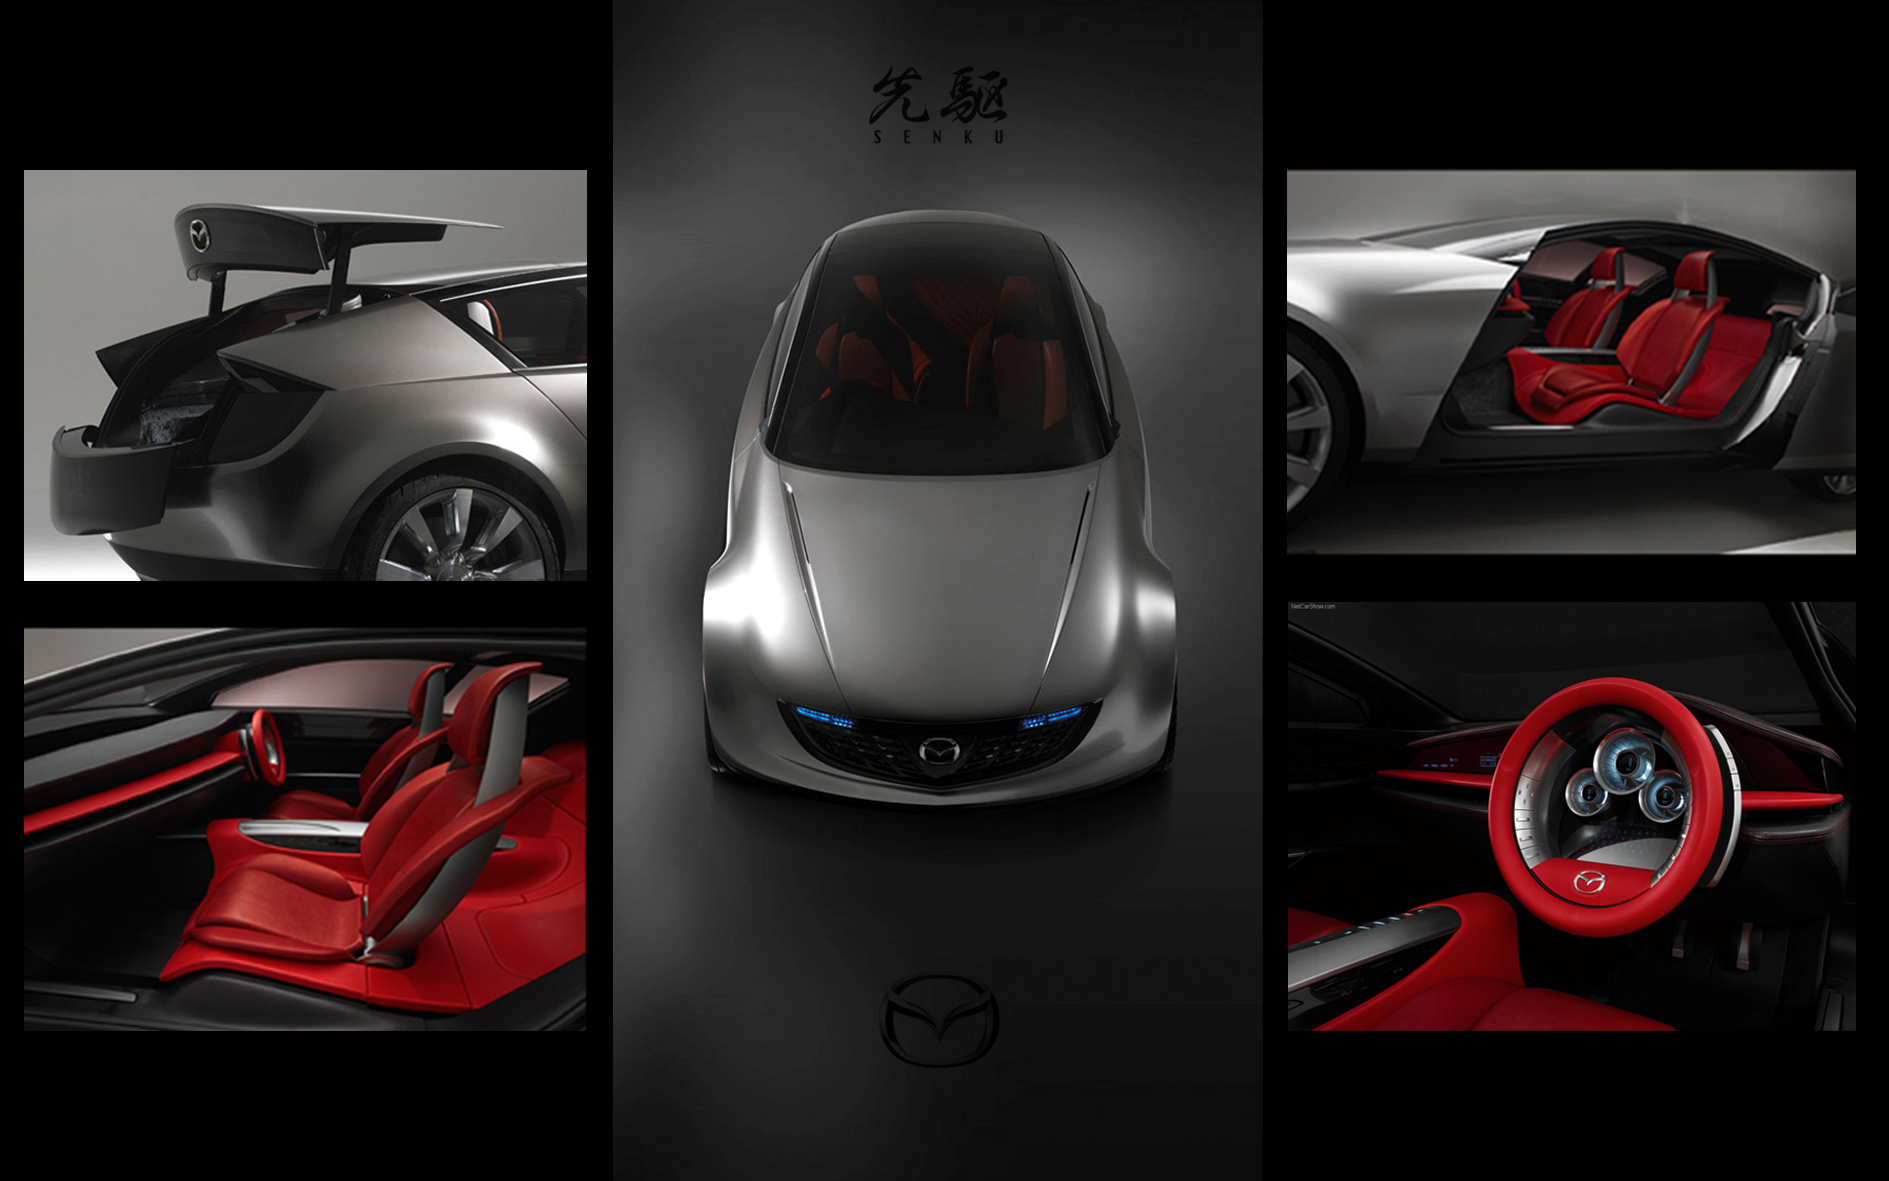 mazda studio by ian nisbett at coroflot